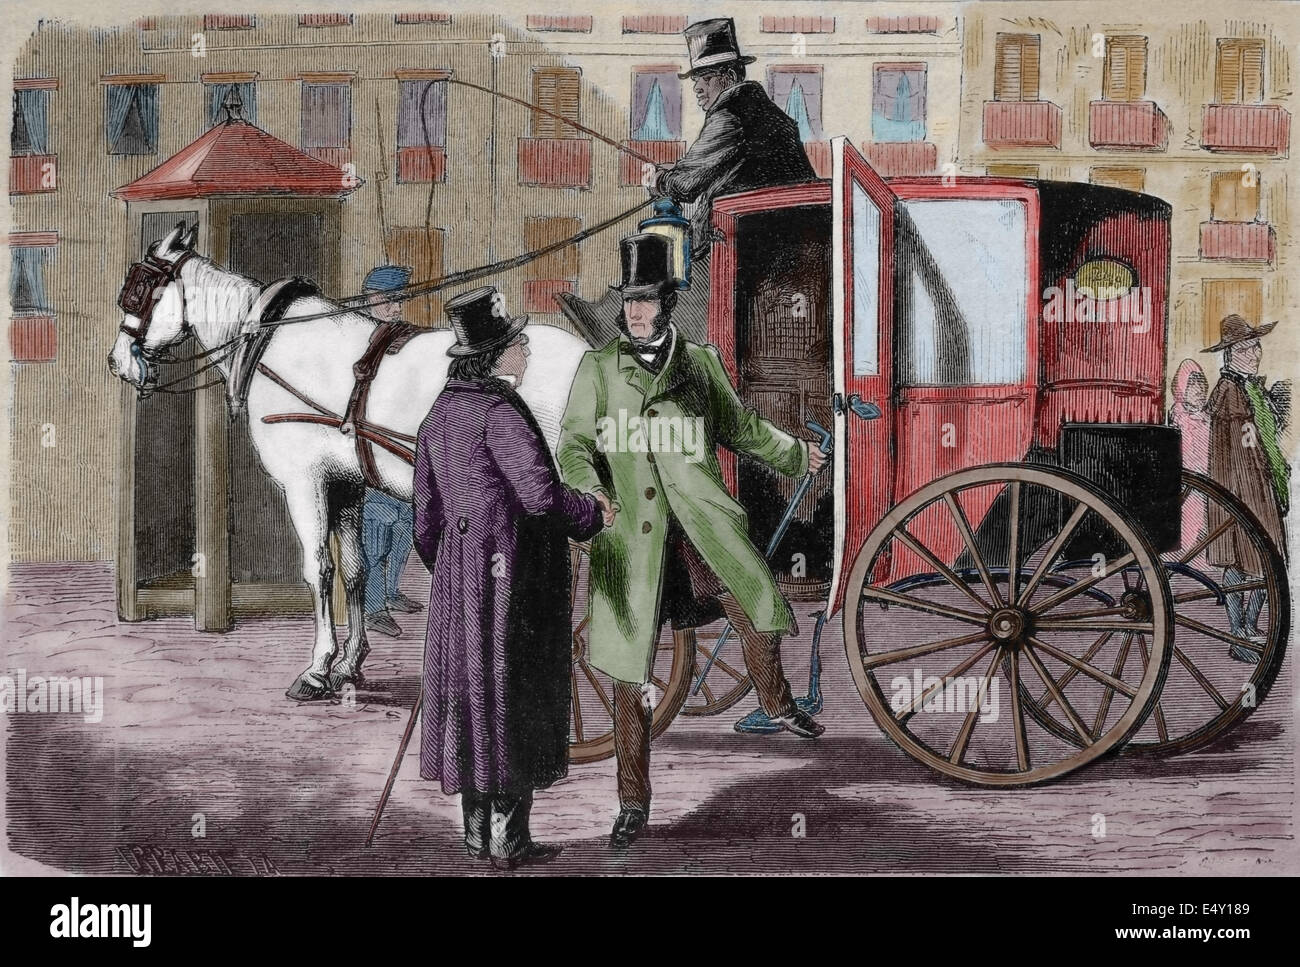 Transportation history. Diligence. Engraving created by Irrabieta, 19th century. - Stock Image